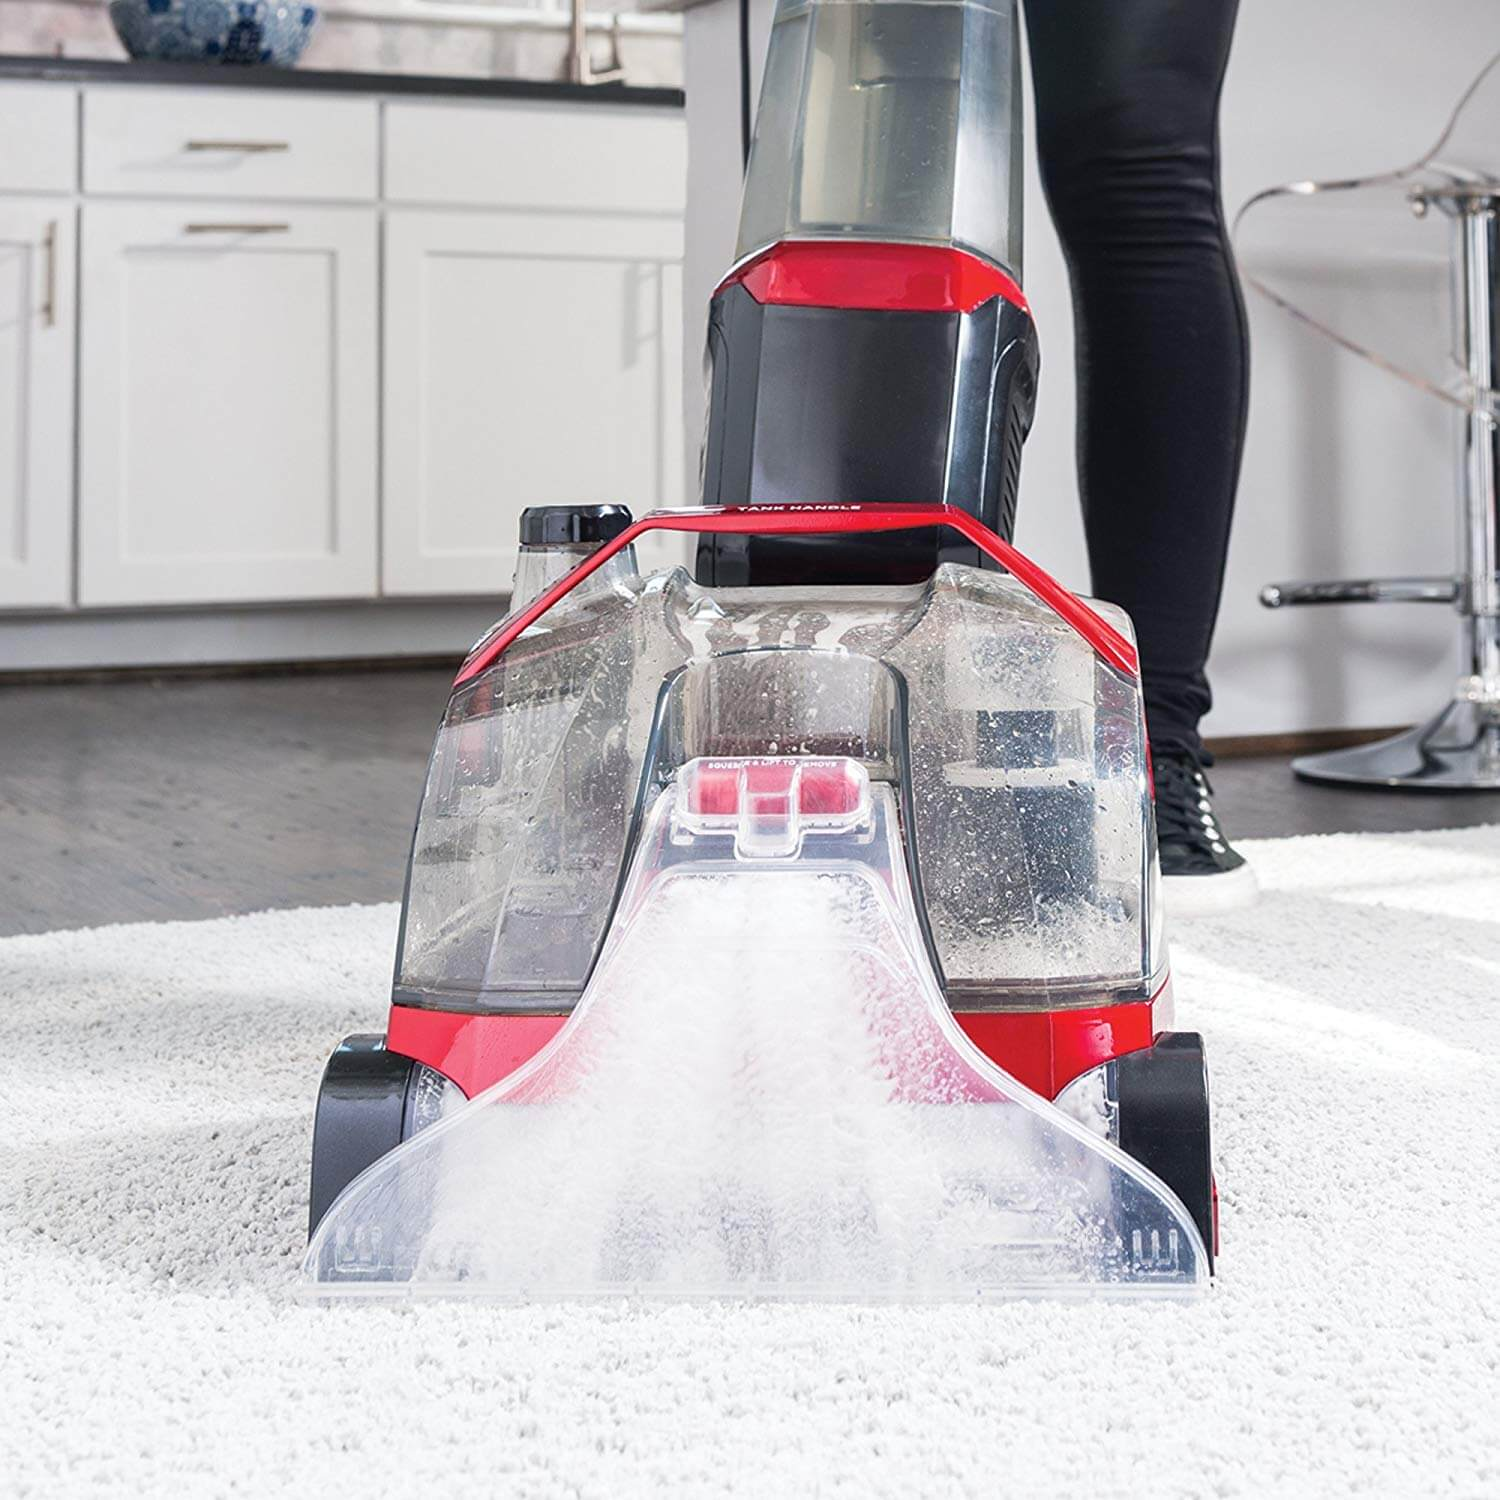 fc 1 - FlexClean All-In-One Floor Cleaner